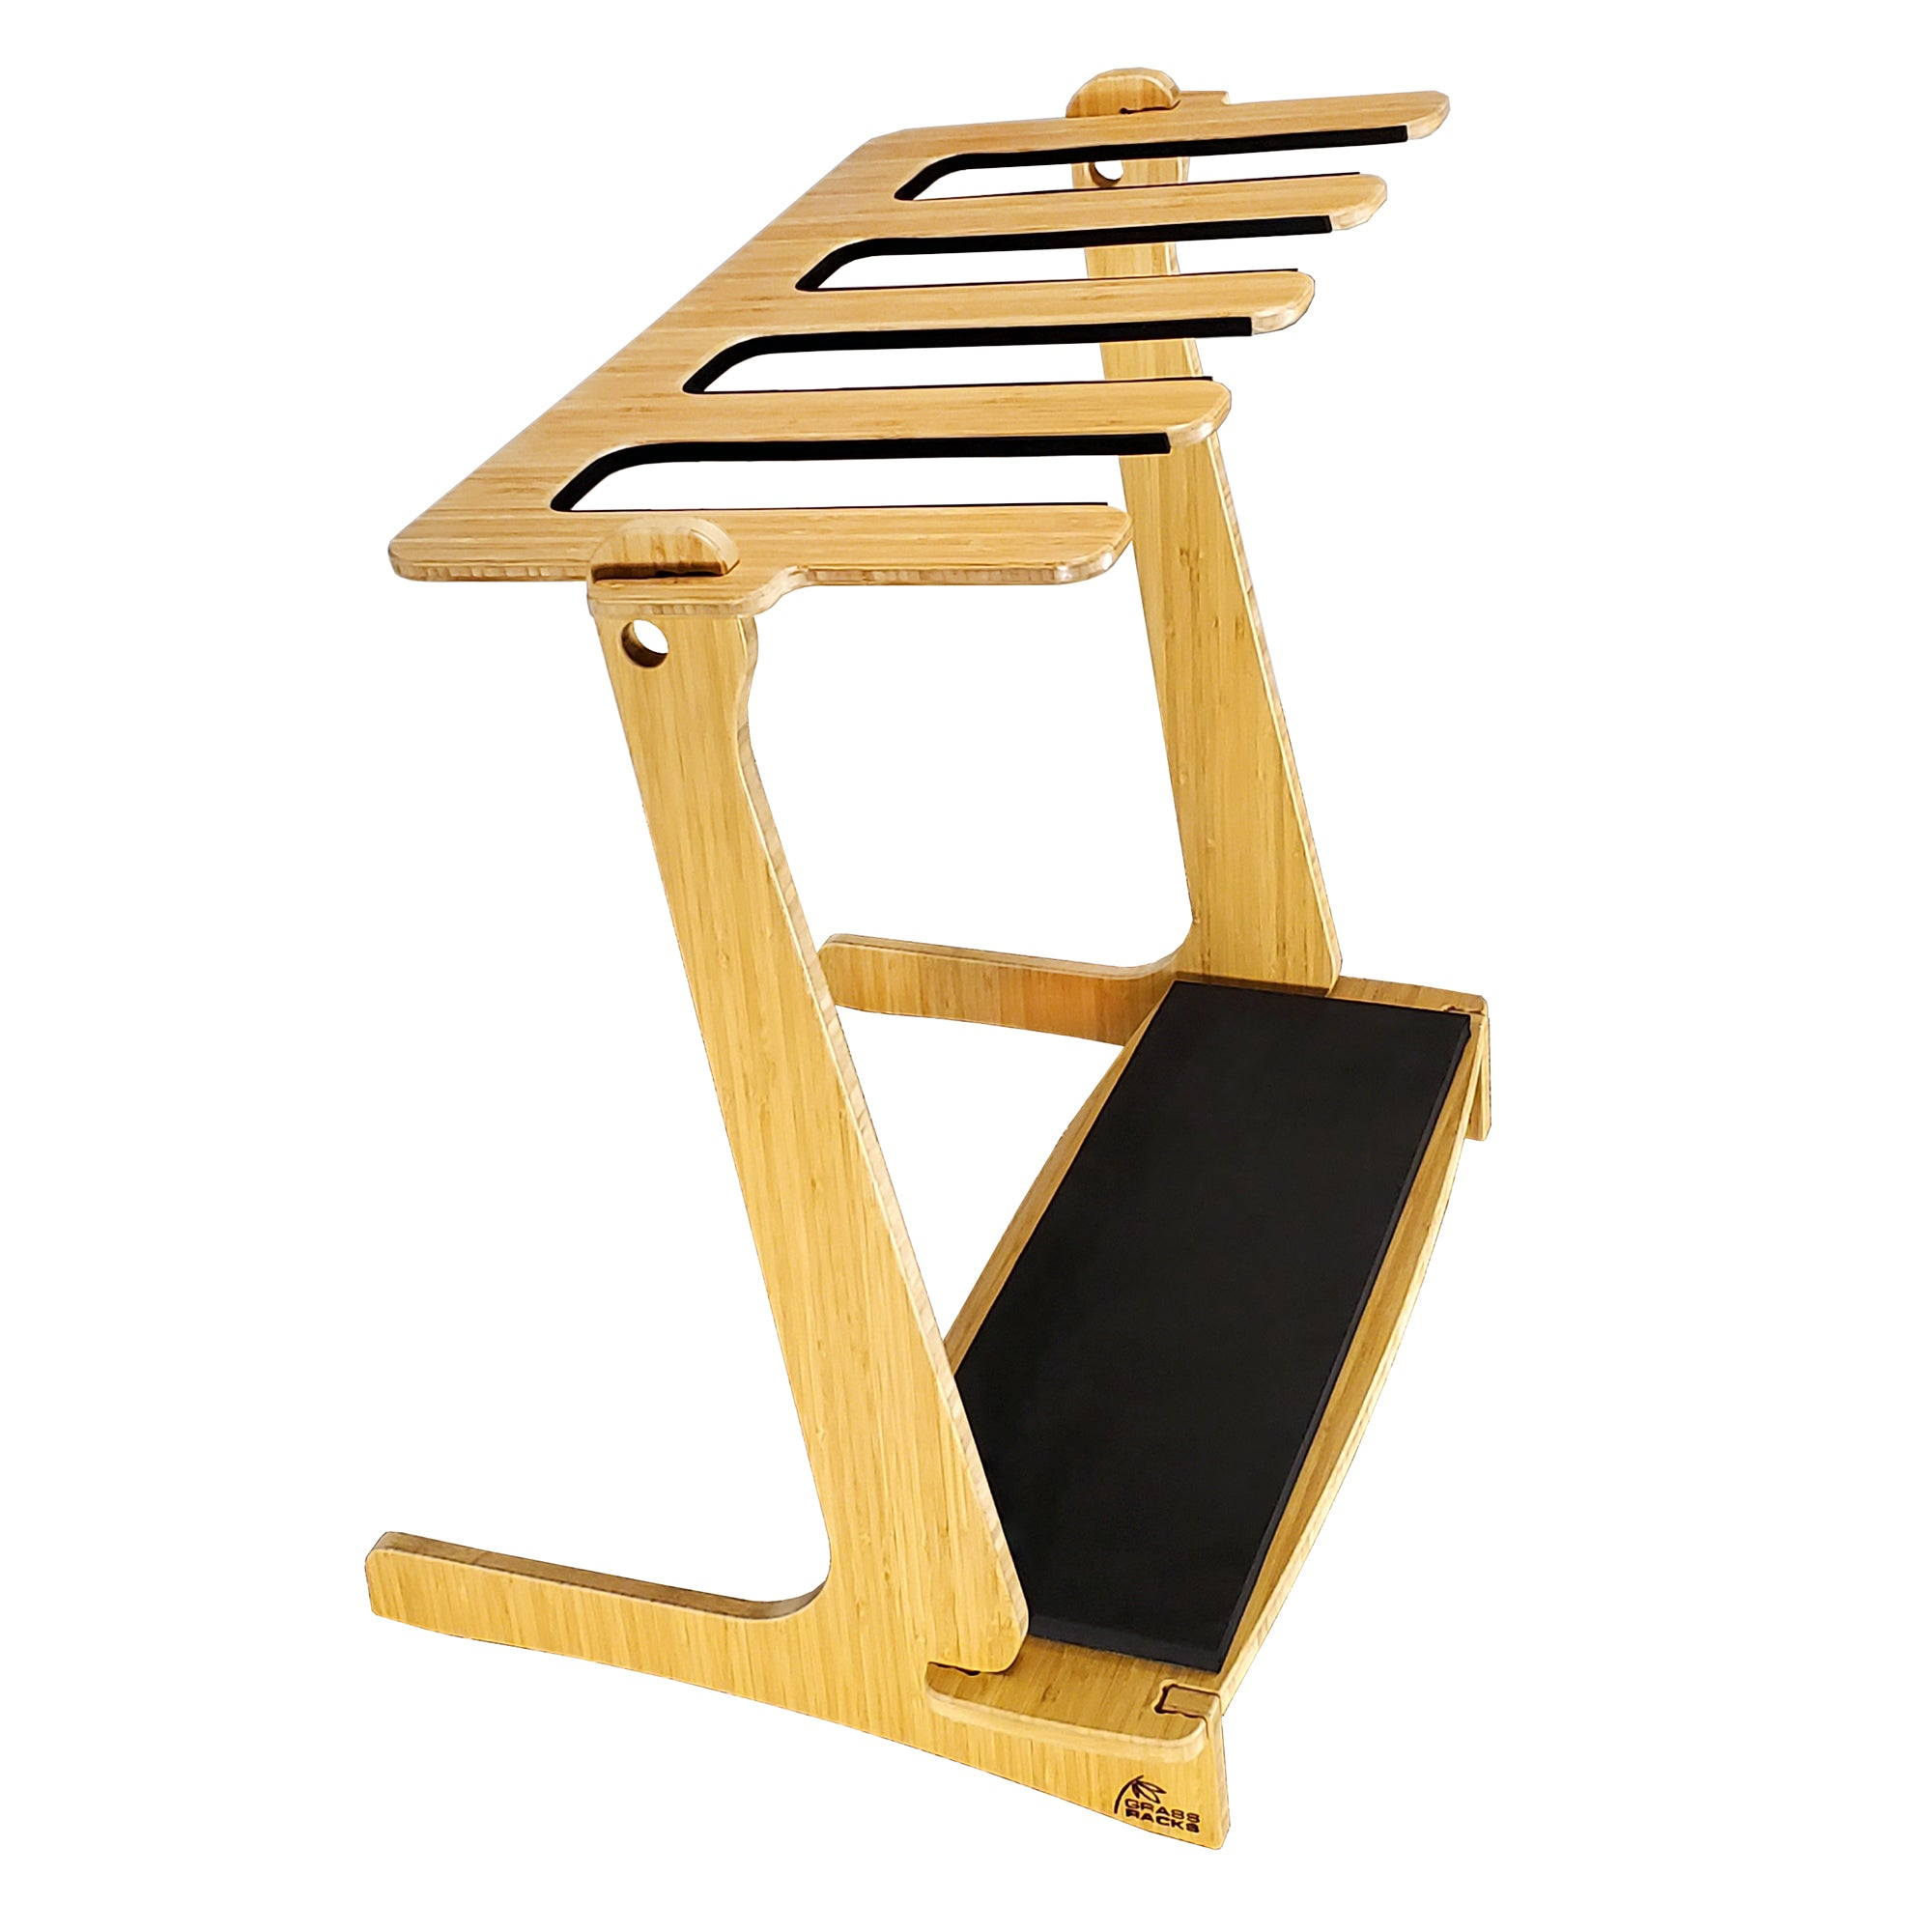 Surfboard Rack | Snowboard Rack | Guitar Rack | Vertical Freestanding Indoor Board Storage Rack